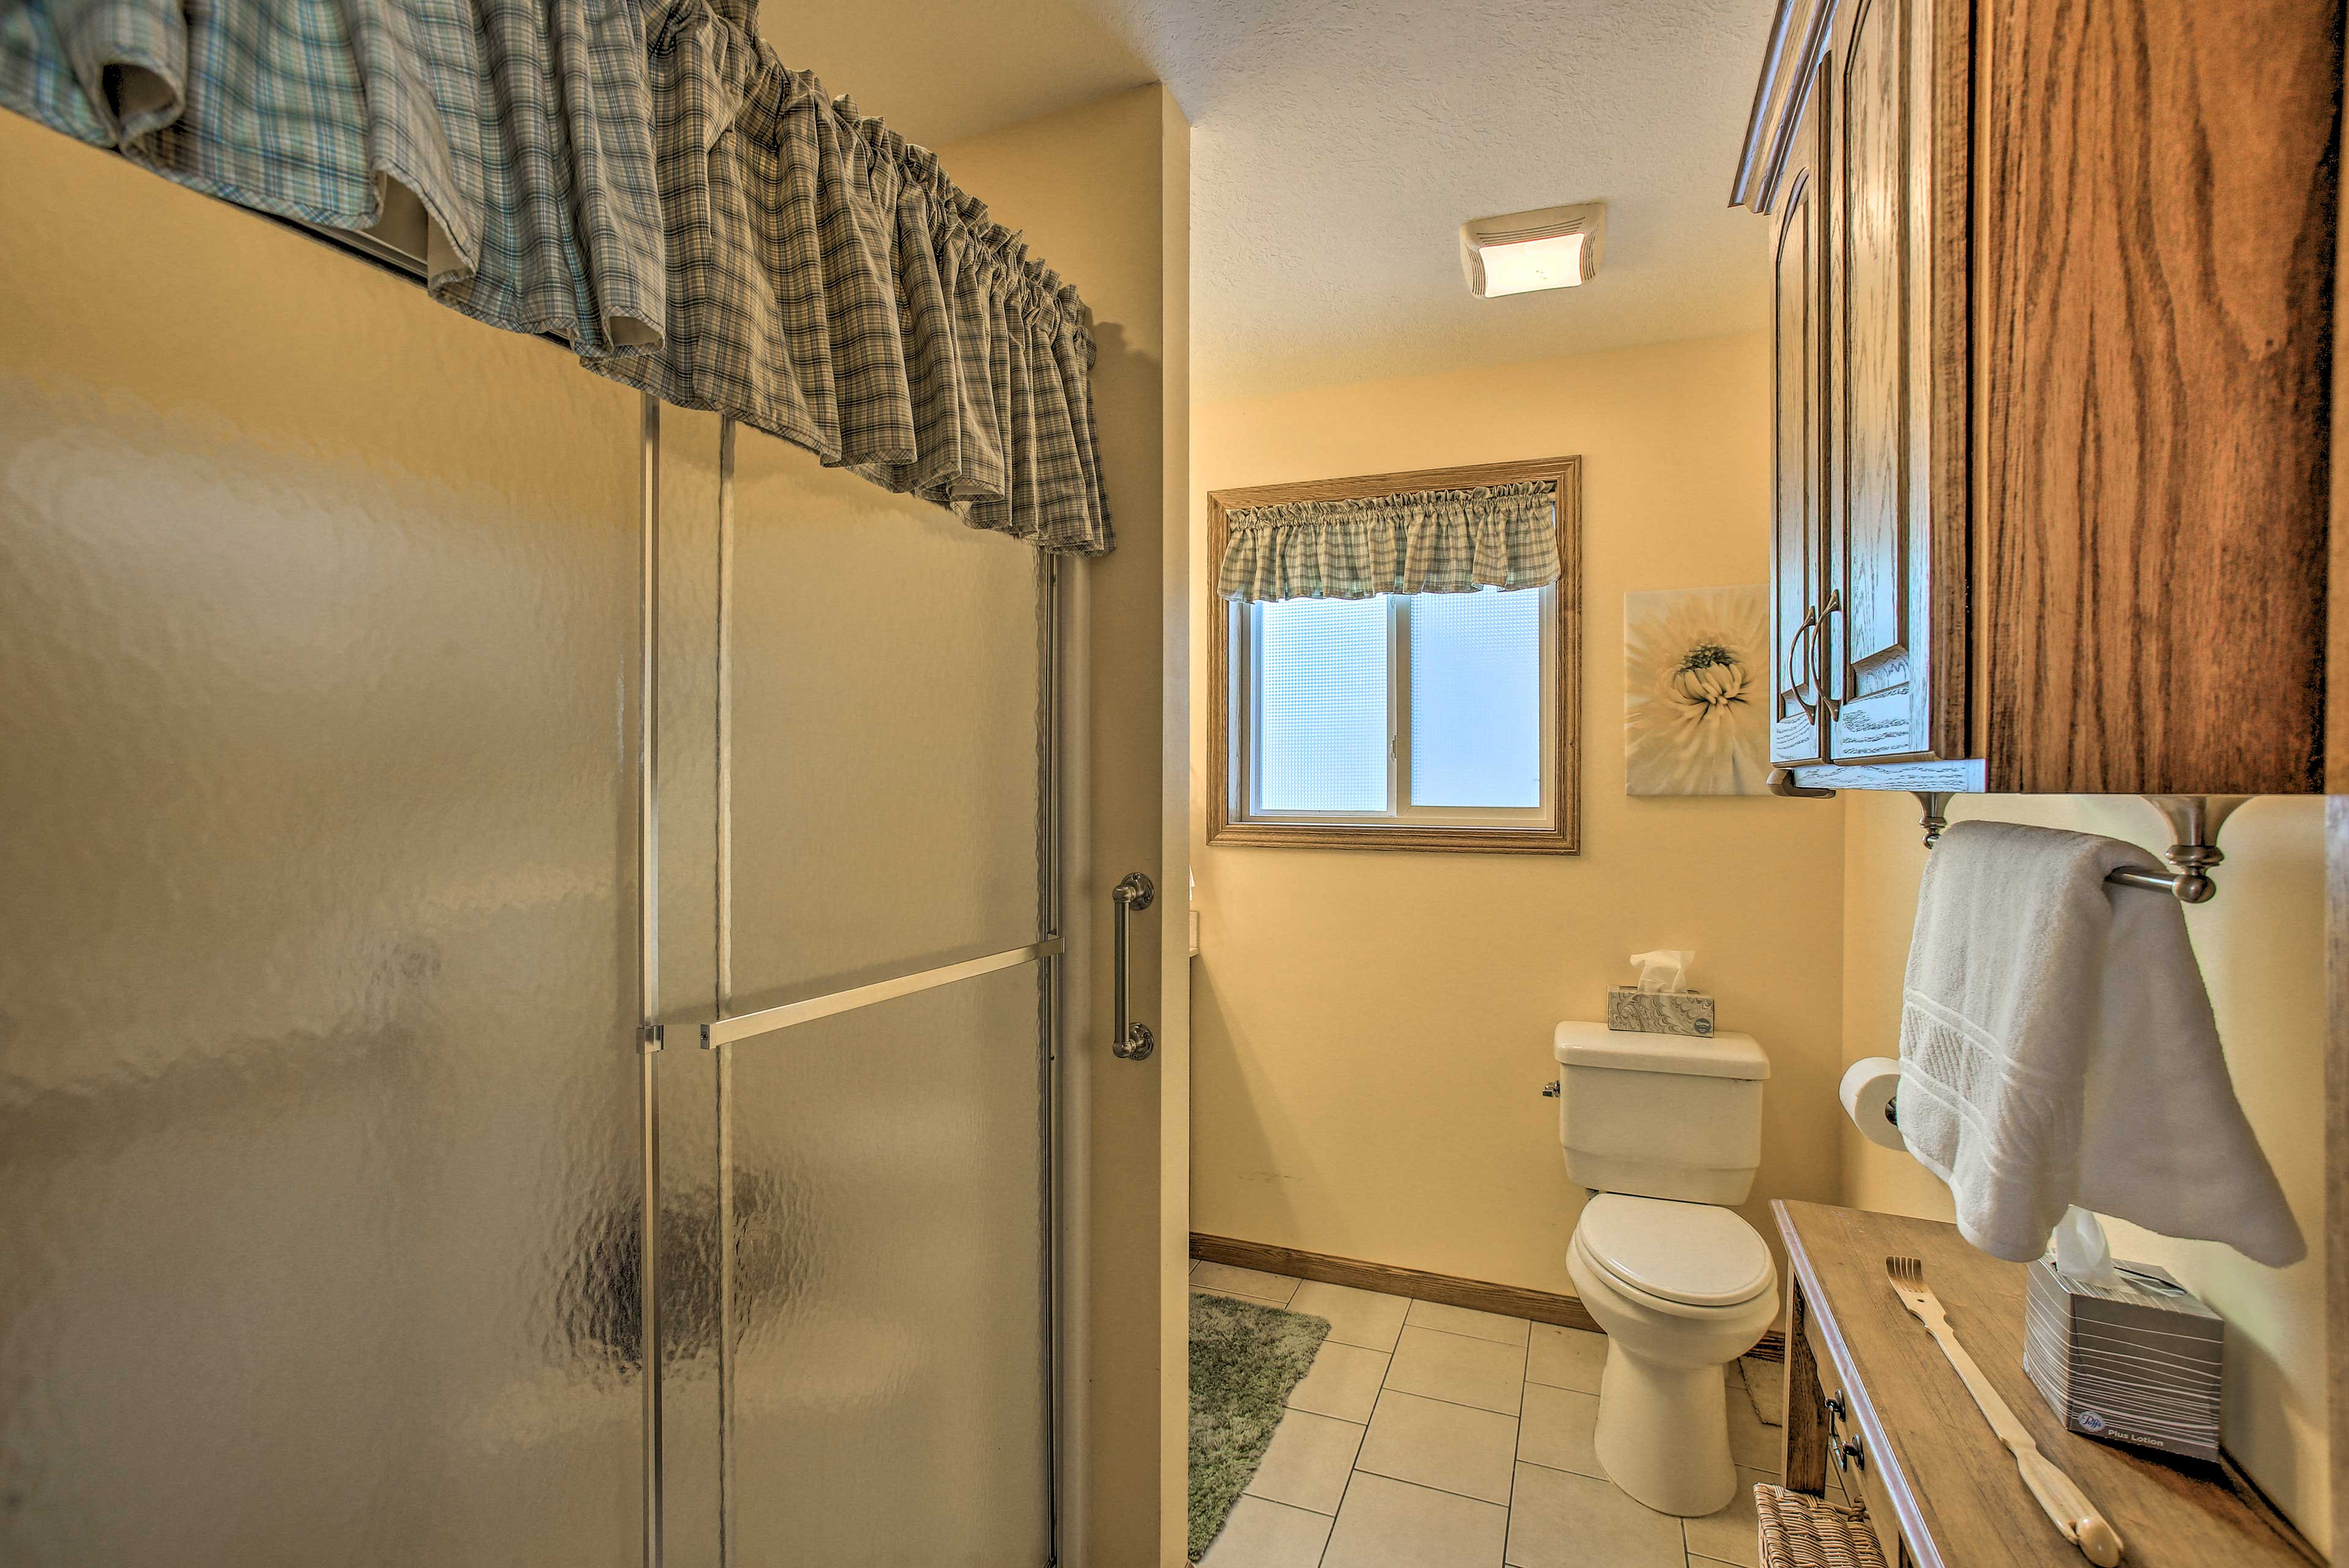 The first bathroom features a full size shower.